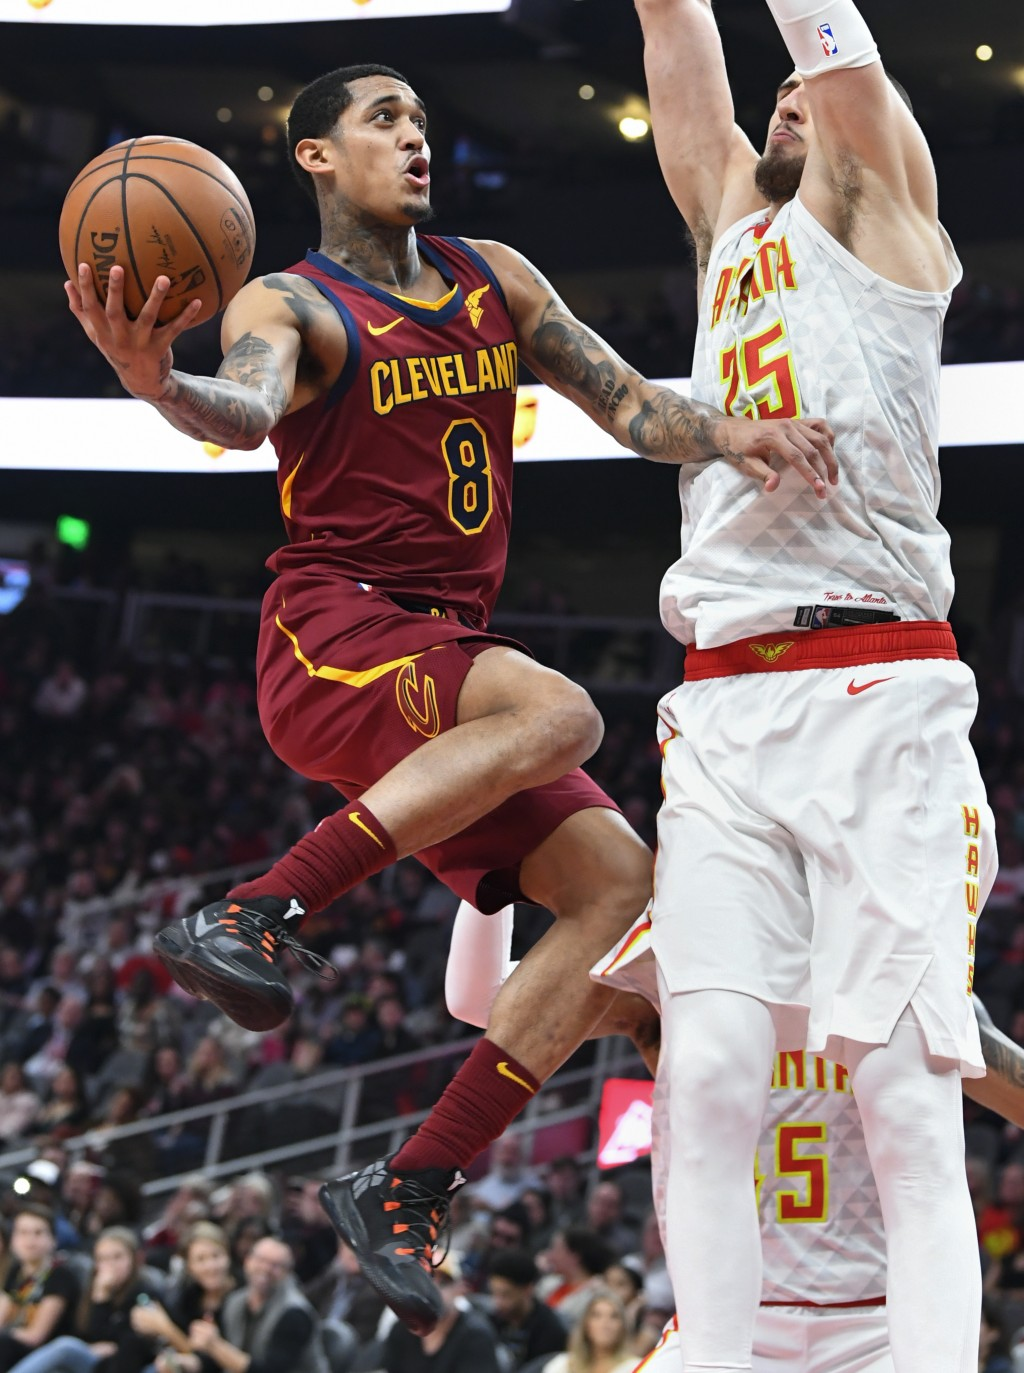 Cleveland Cavaliers guard Jordan Clarkson (8) goes up against the defense of Atlanta Hawks center Alex Len (25) during the first half of an NBA basket...